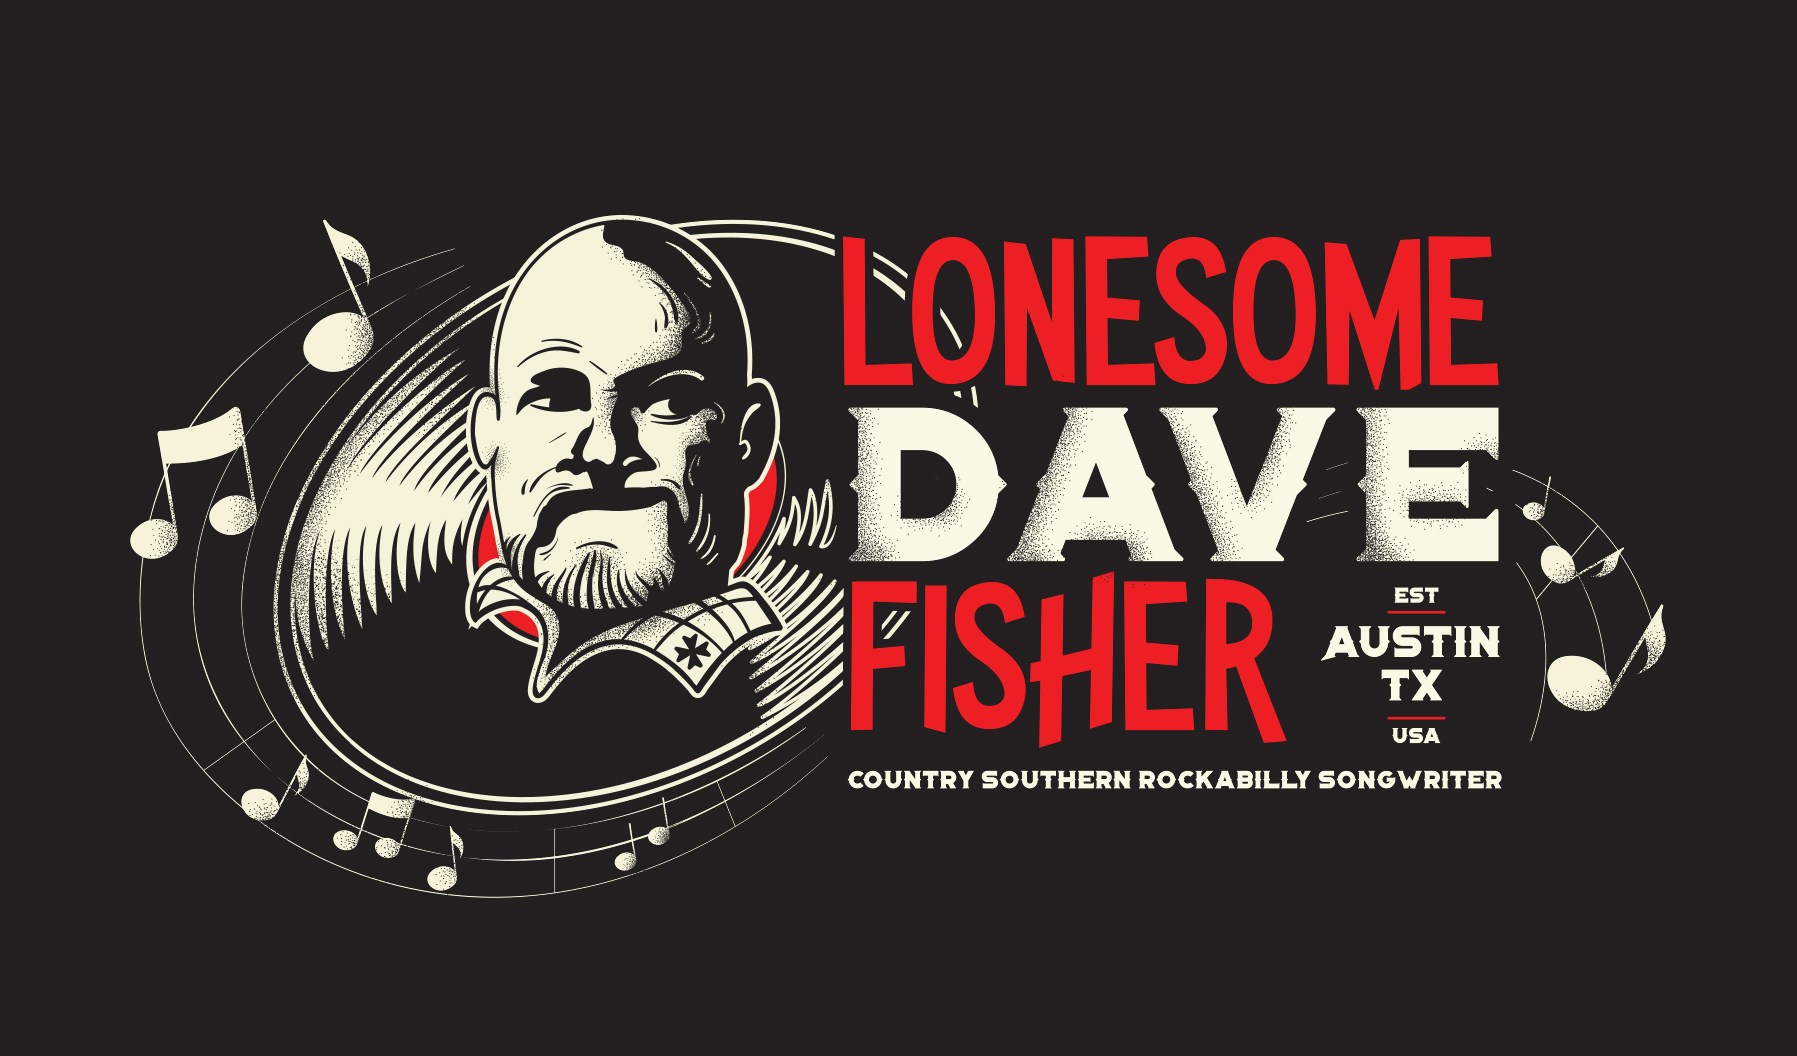 Lonesome Dave Fisher Logo